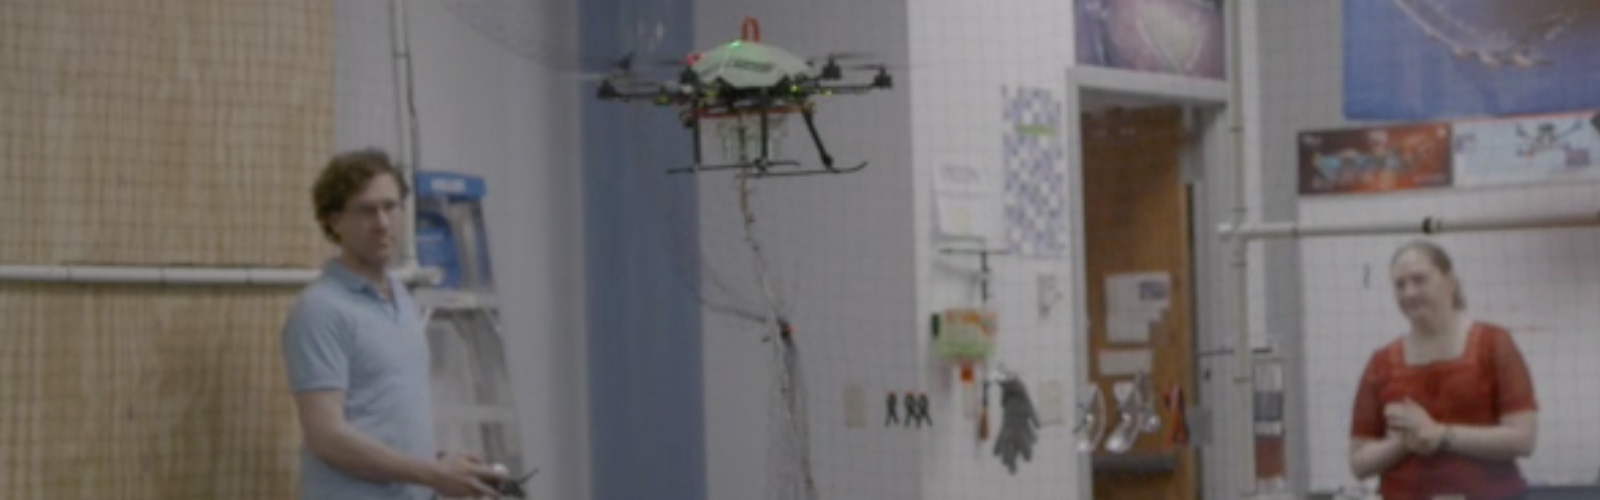 Members of the Drone Lab flying a drone inside the facility.